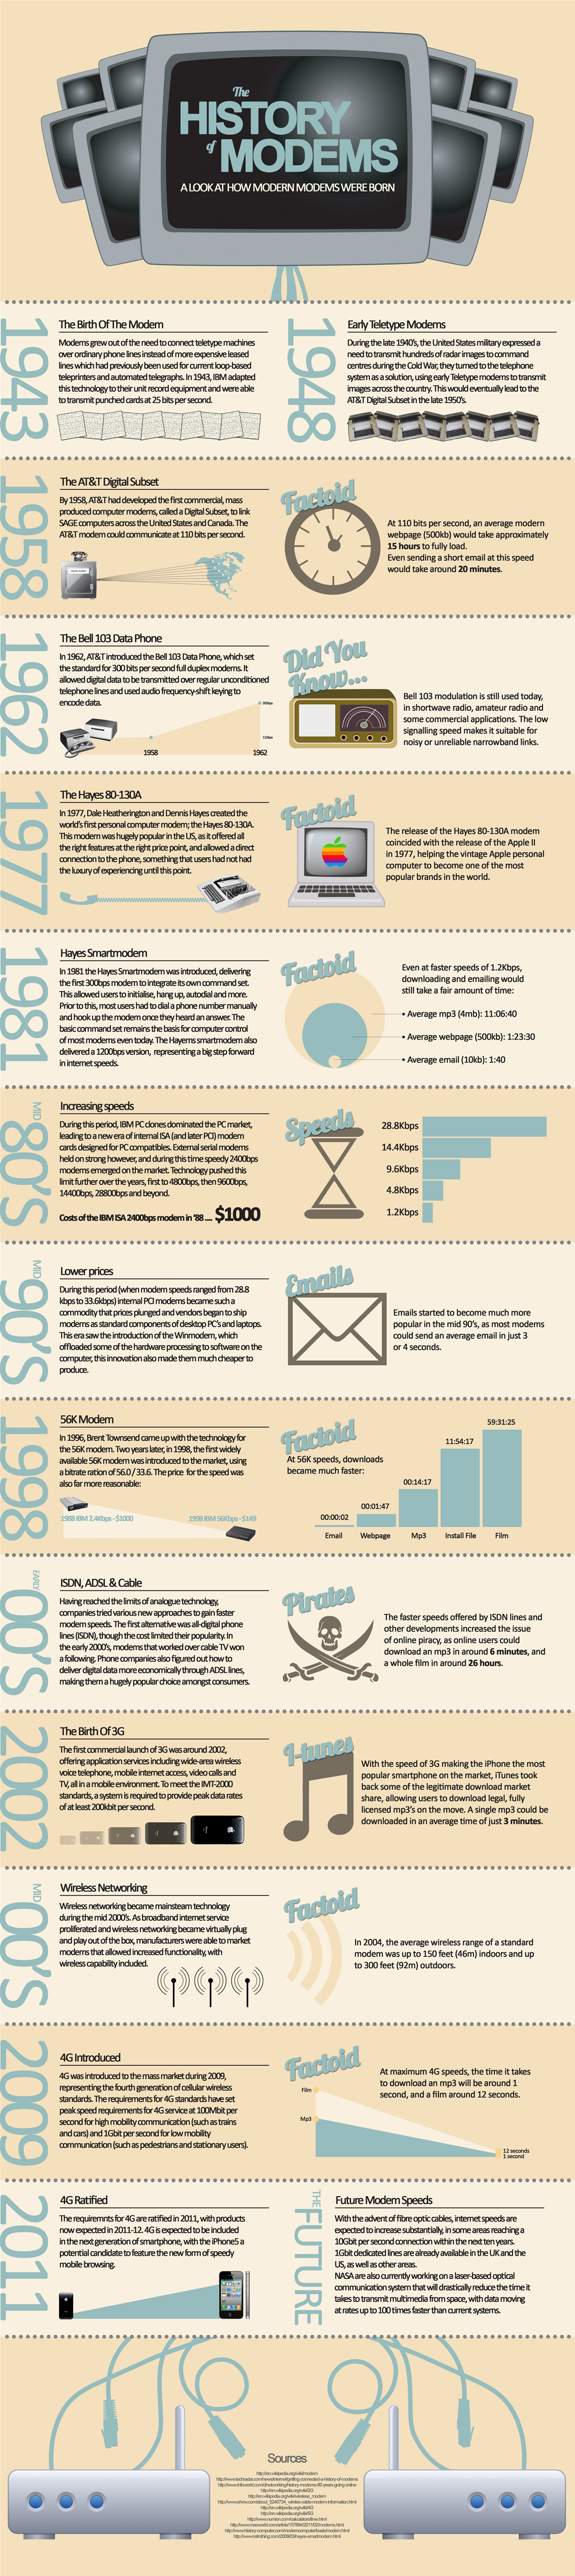 An Infographic on the History of the Modem